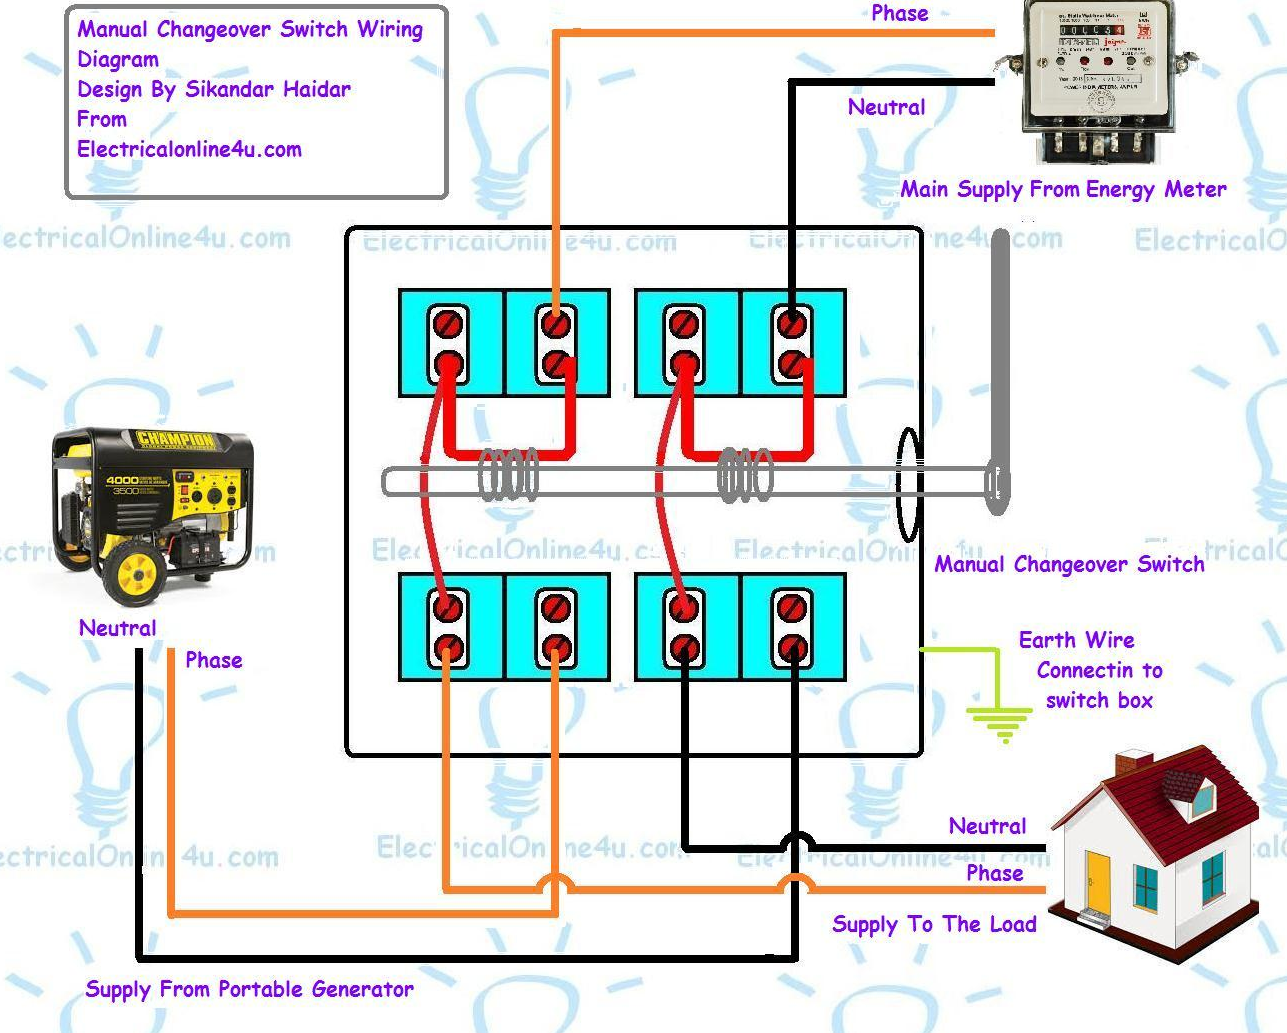 Wiring 2 Switches With 1 Power Source Enthusiast Diagrams Light Manual Changeover Switch Diagram For Portable Generator Electrical Online 4u Lights To In One Box